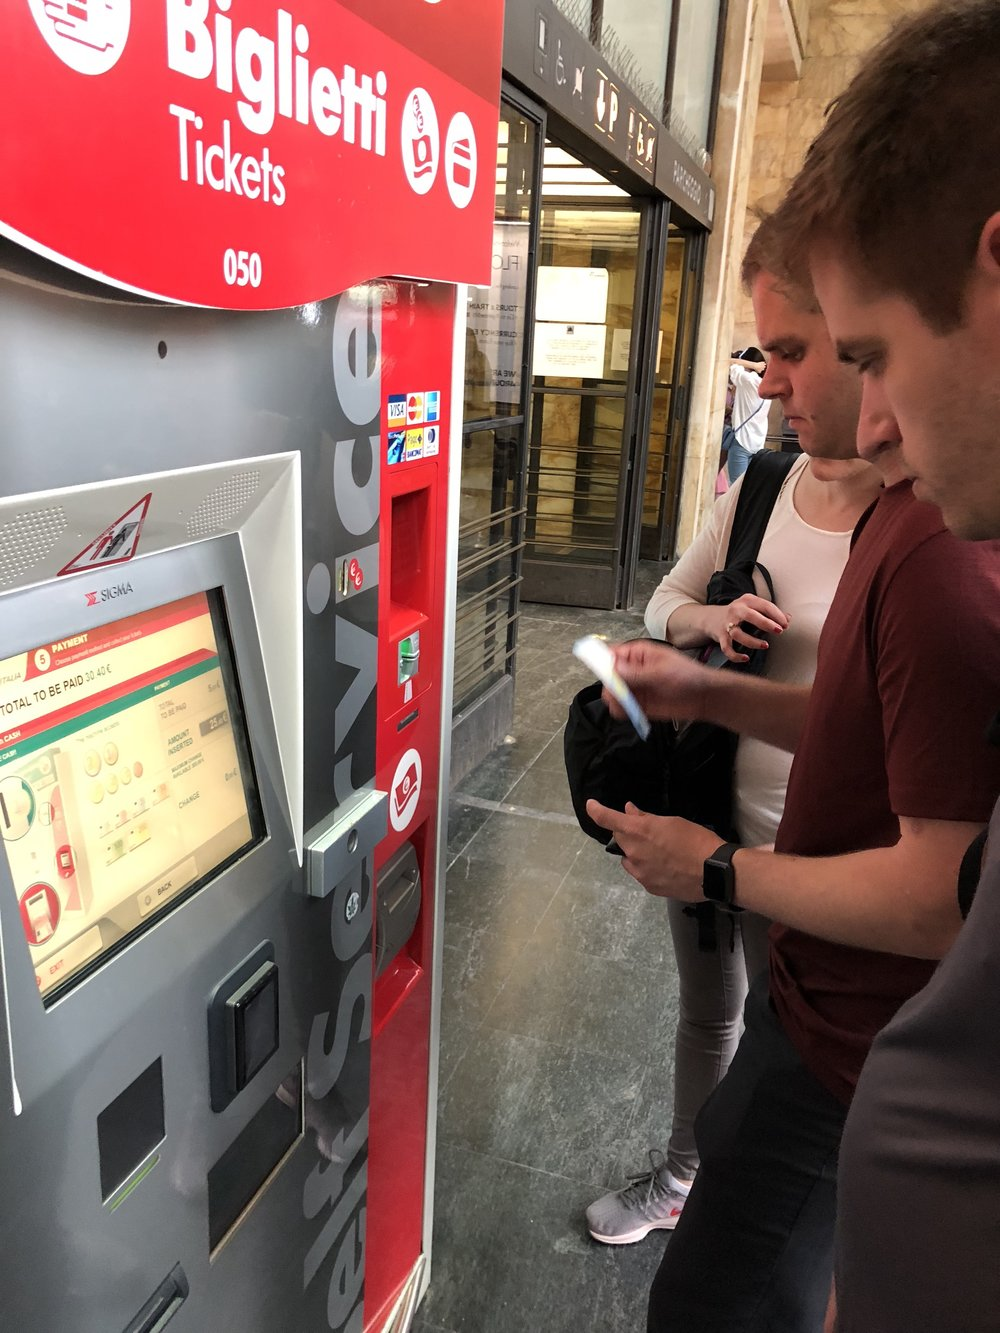 Self-service ticket kiosk at Florence SMN train station